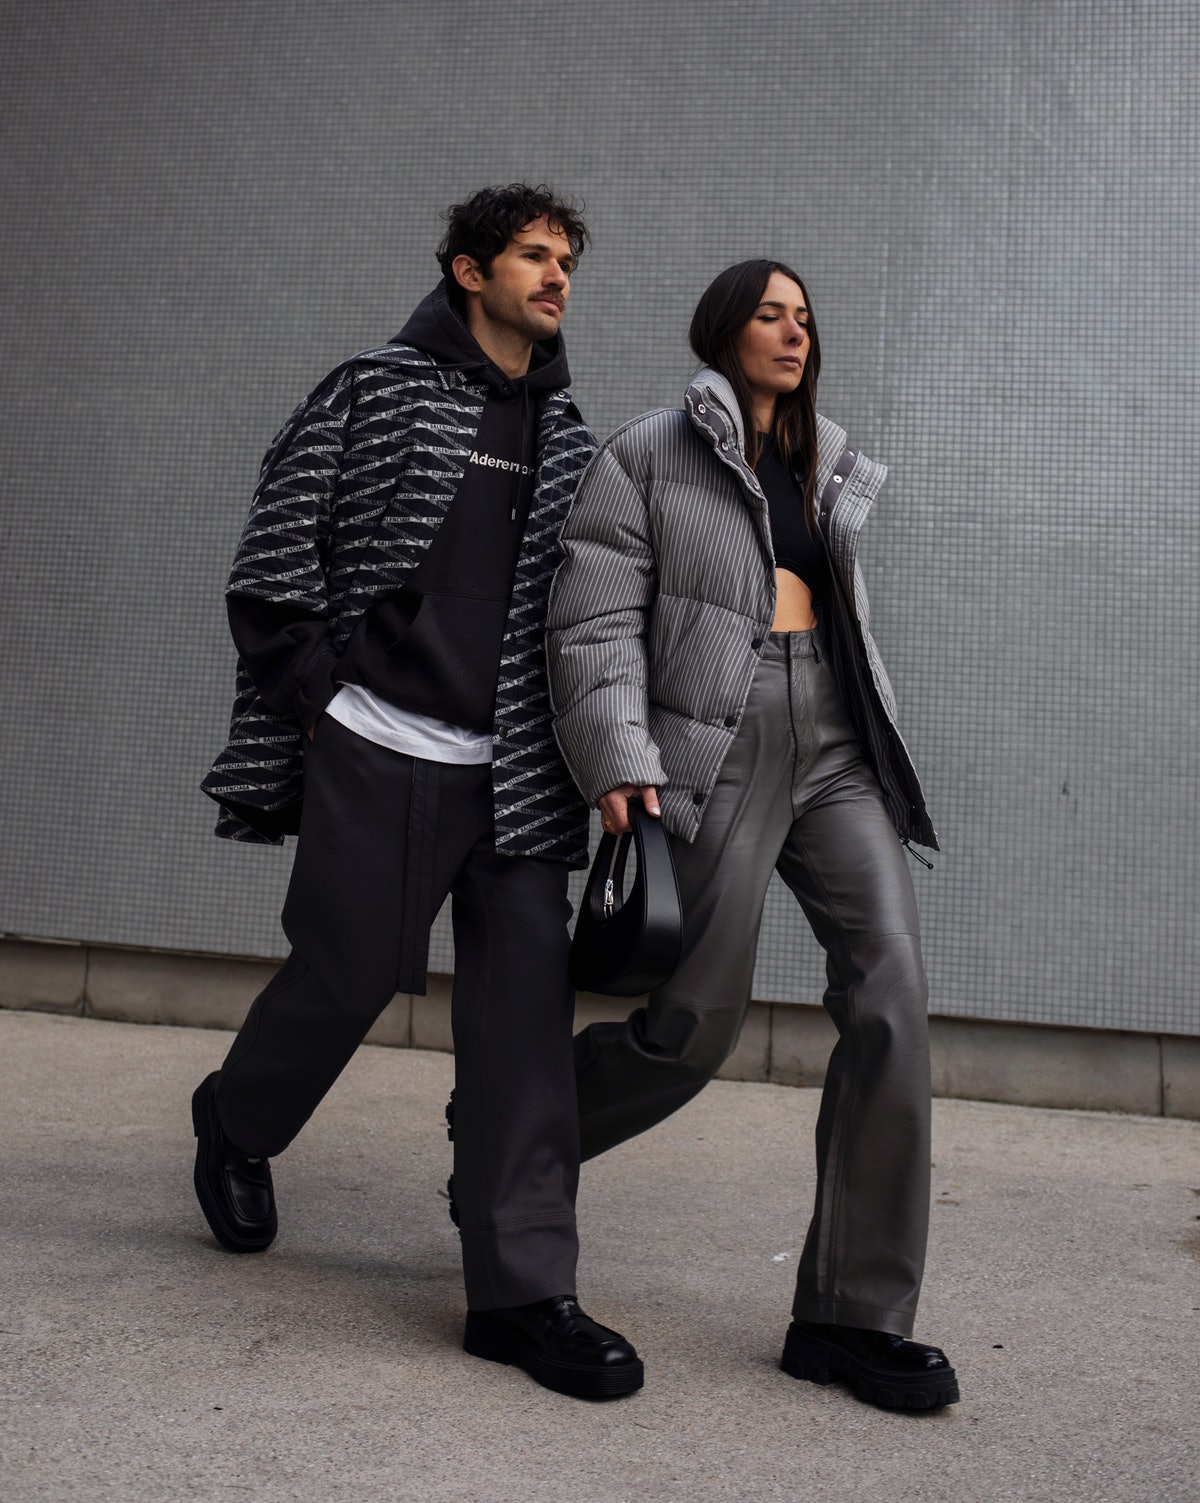 Alice Barbier and js Roques street style.